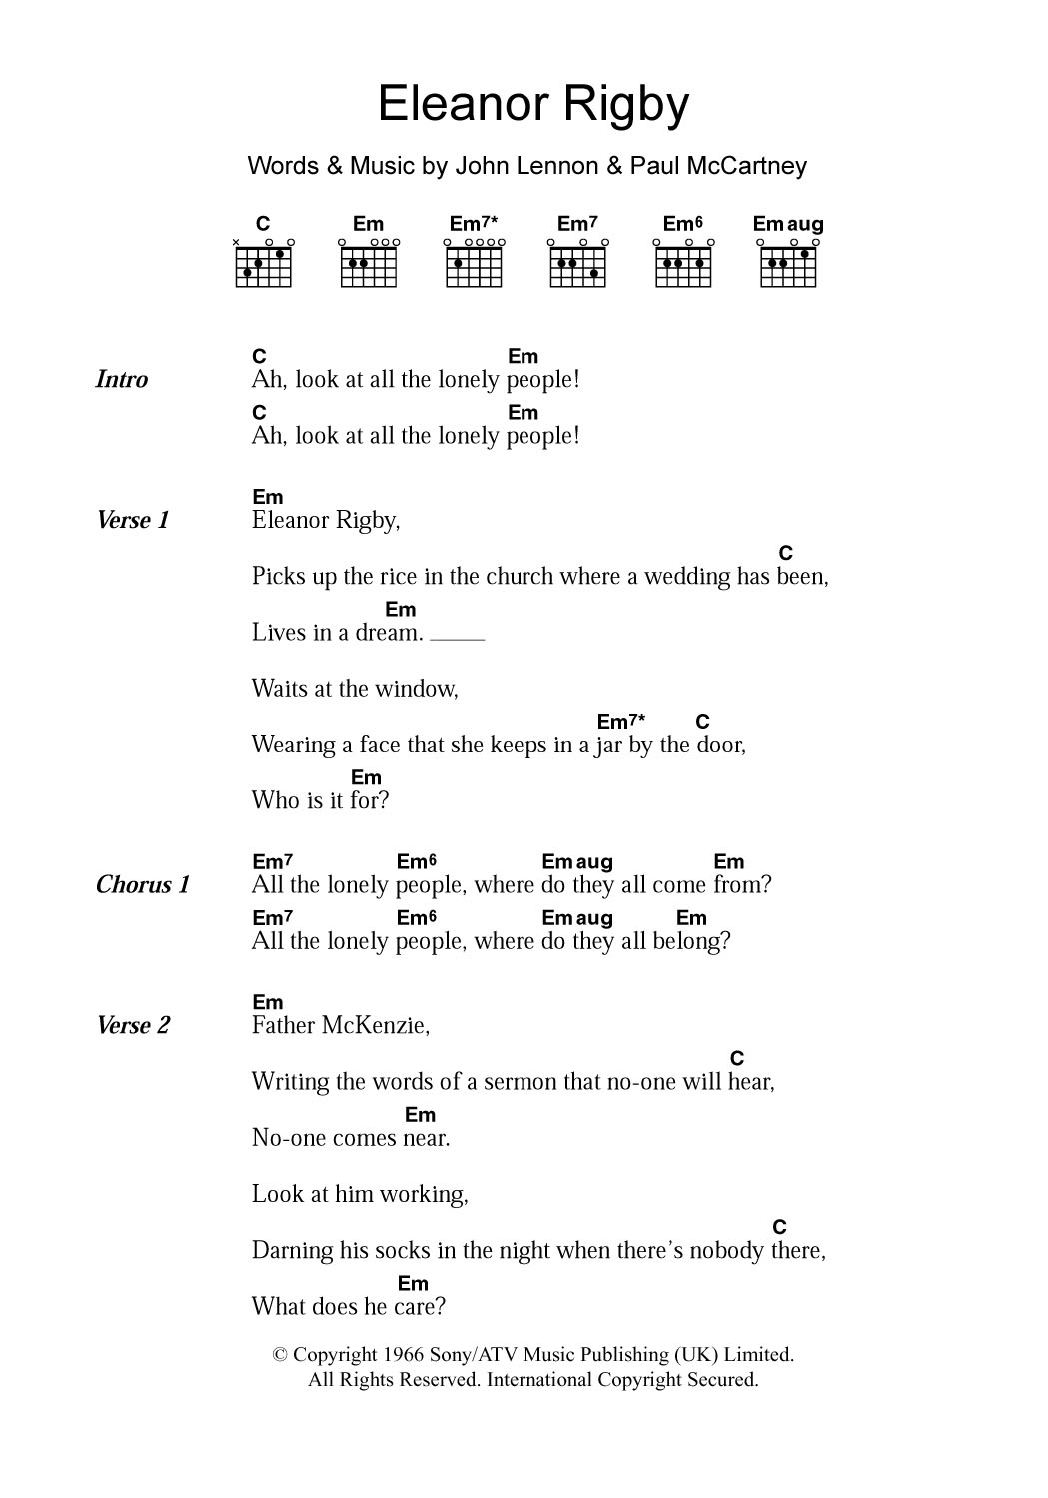 Lyrics for Eleanor Rigby by The Beatles - Songfacts